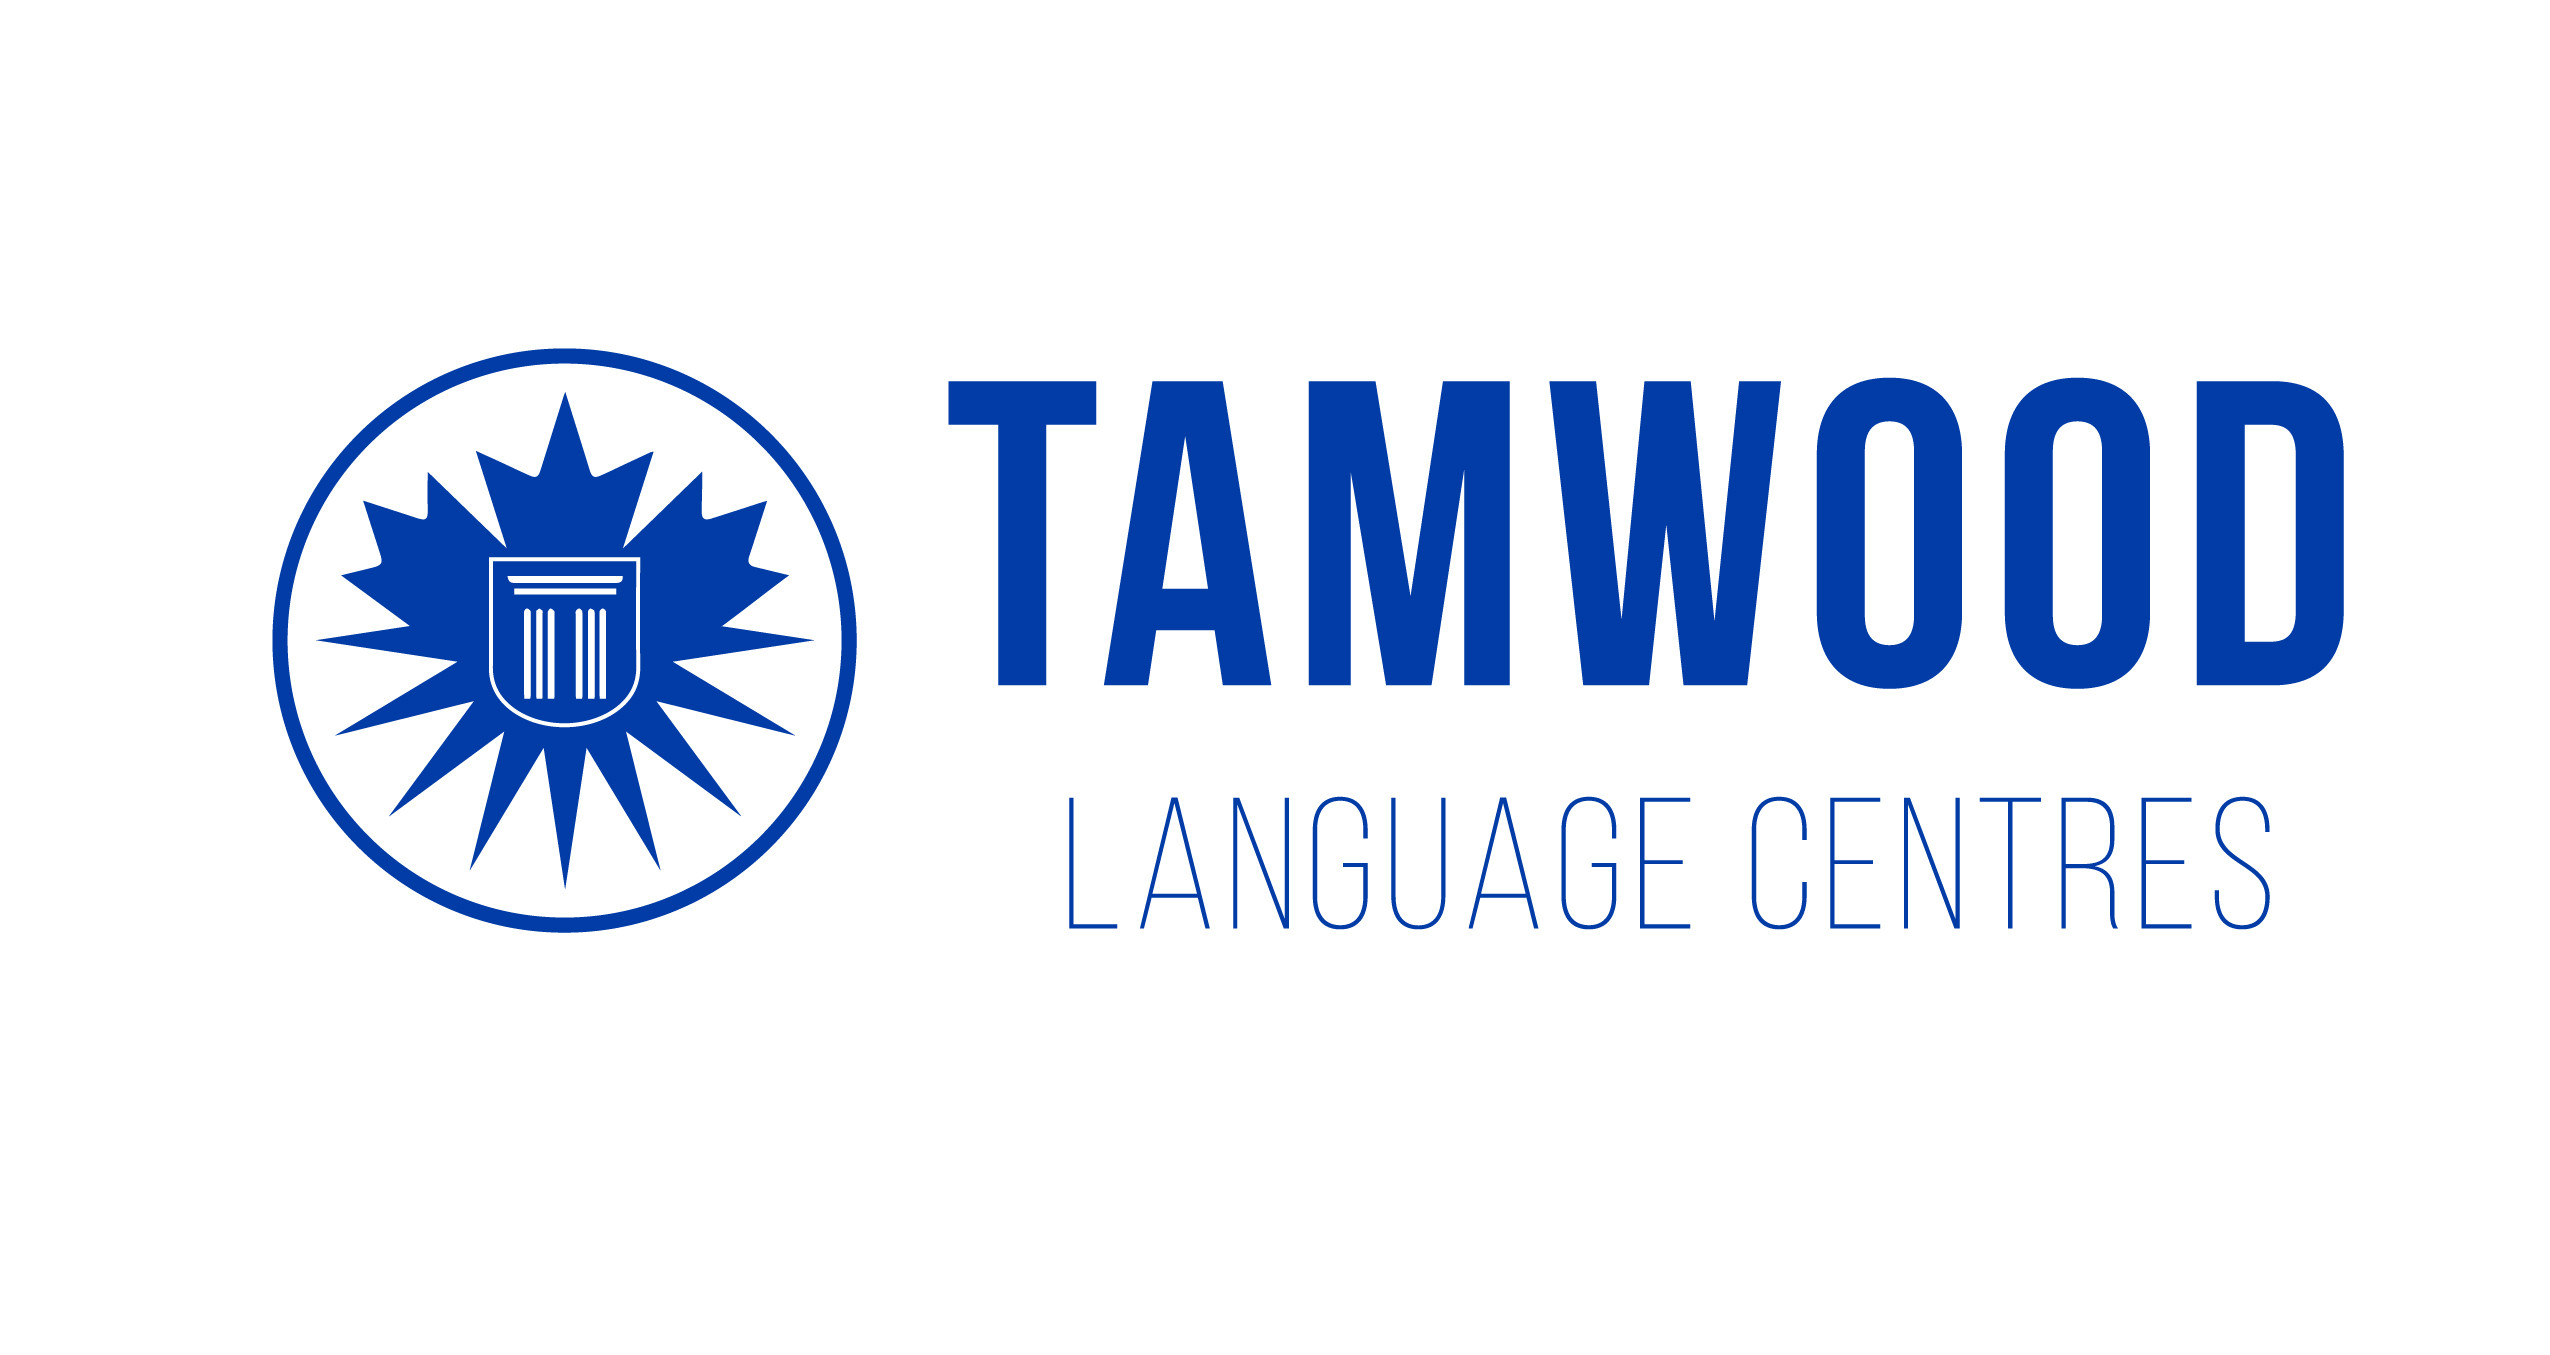 【CAN】Tamwood Logo